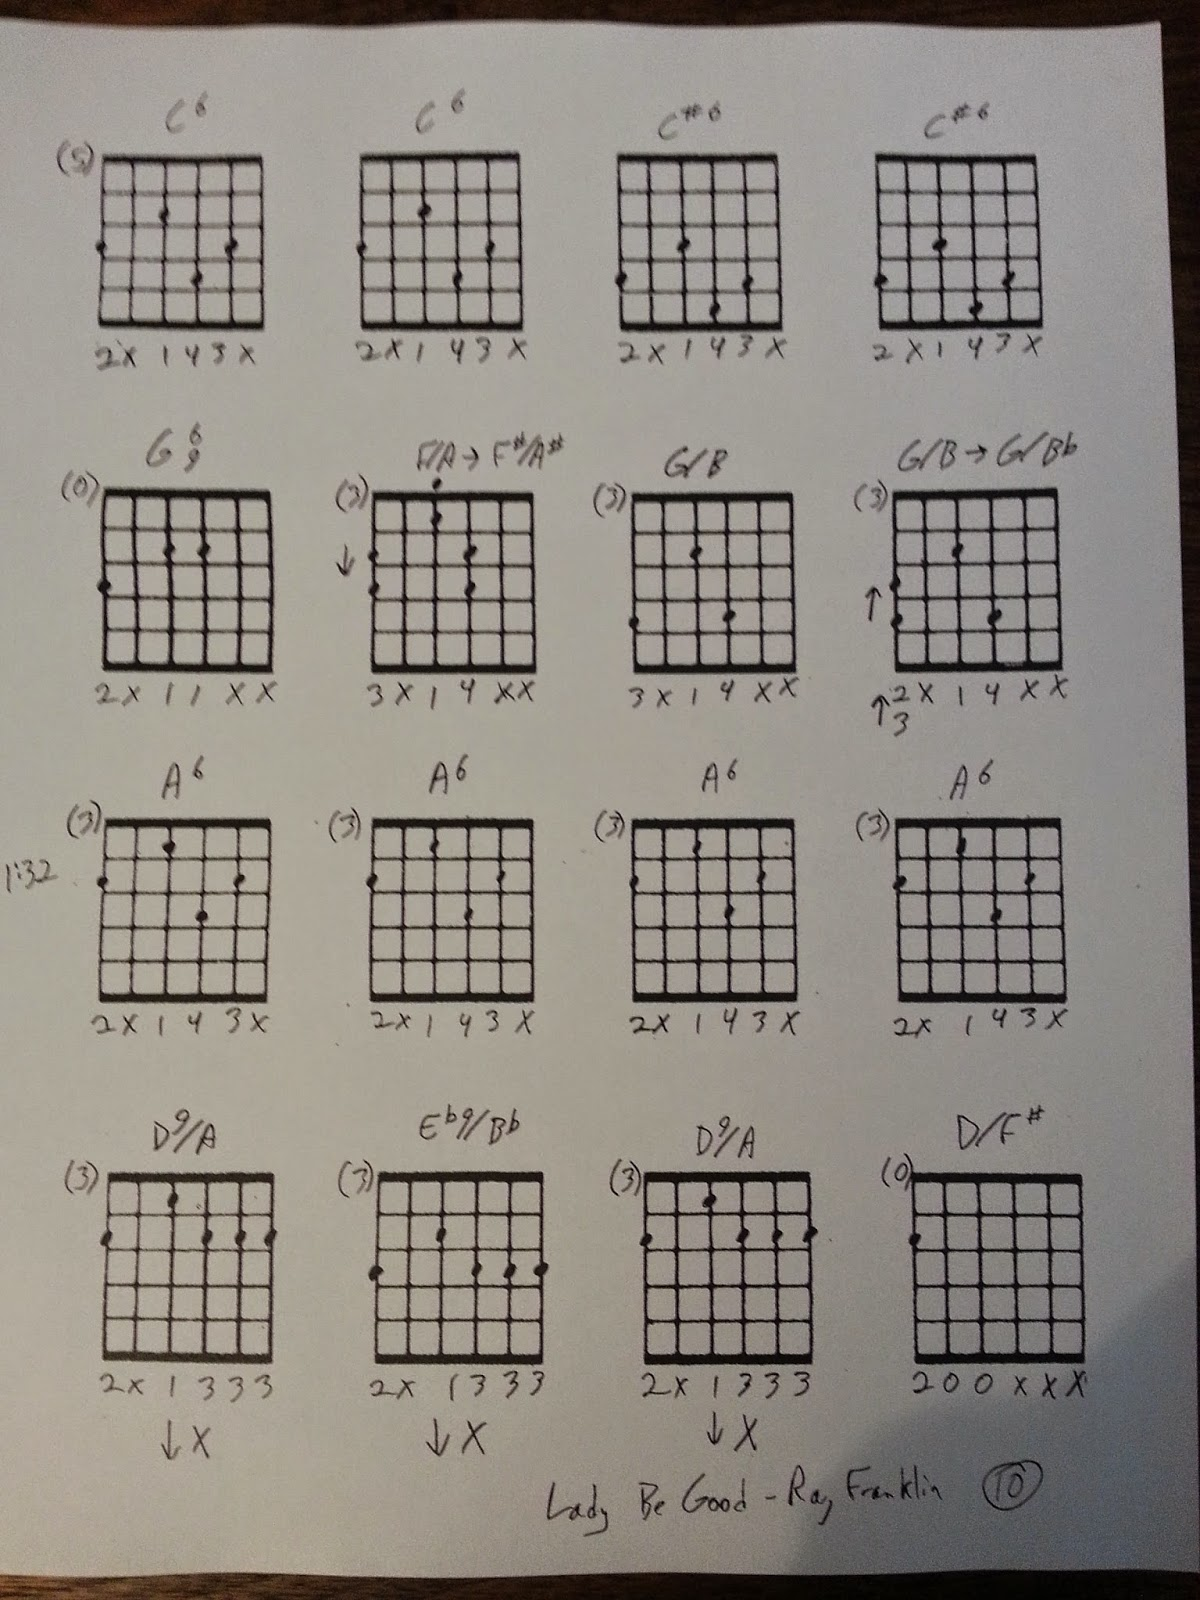 Texas style guitar backup ray franklin texas guitar hero did you see any chords you recognized not to worry here is a sample of my transcription hexwebz Gallery